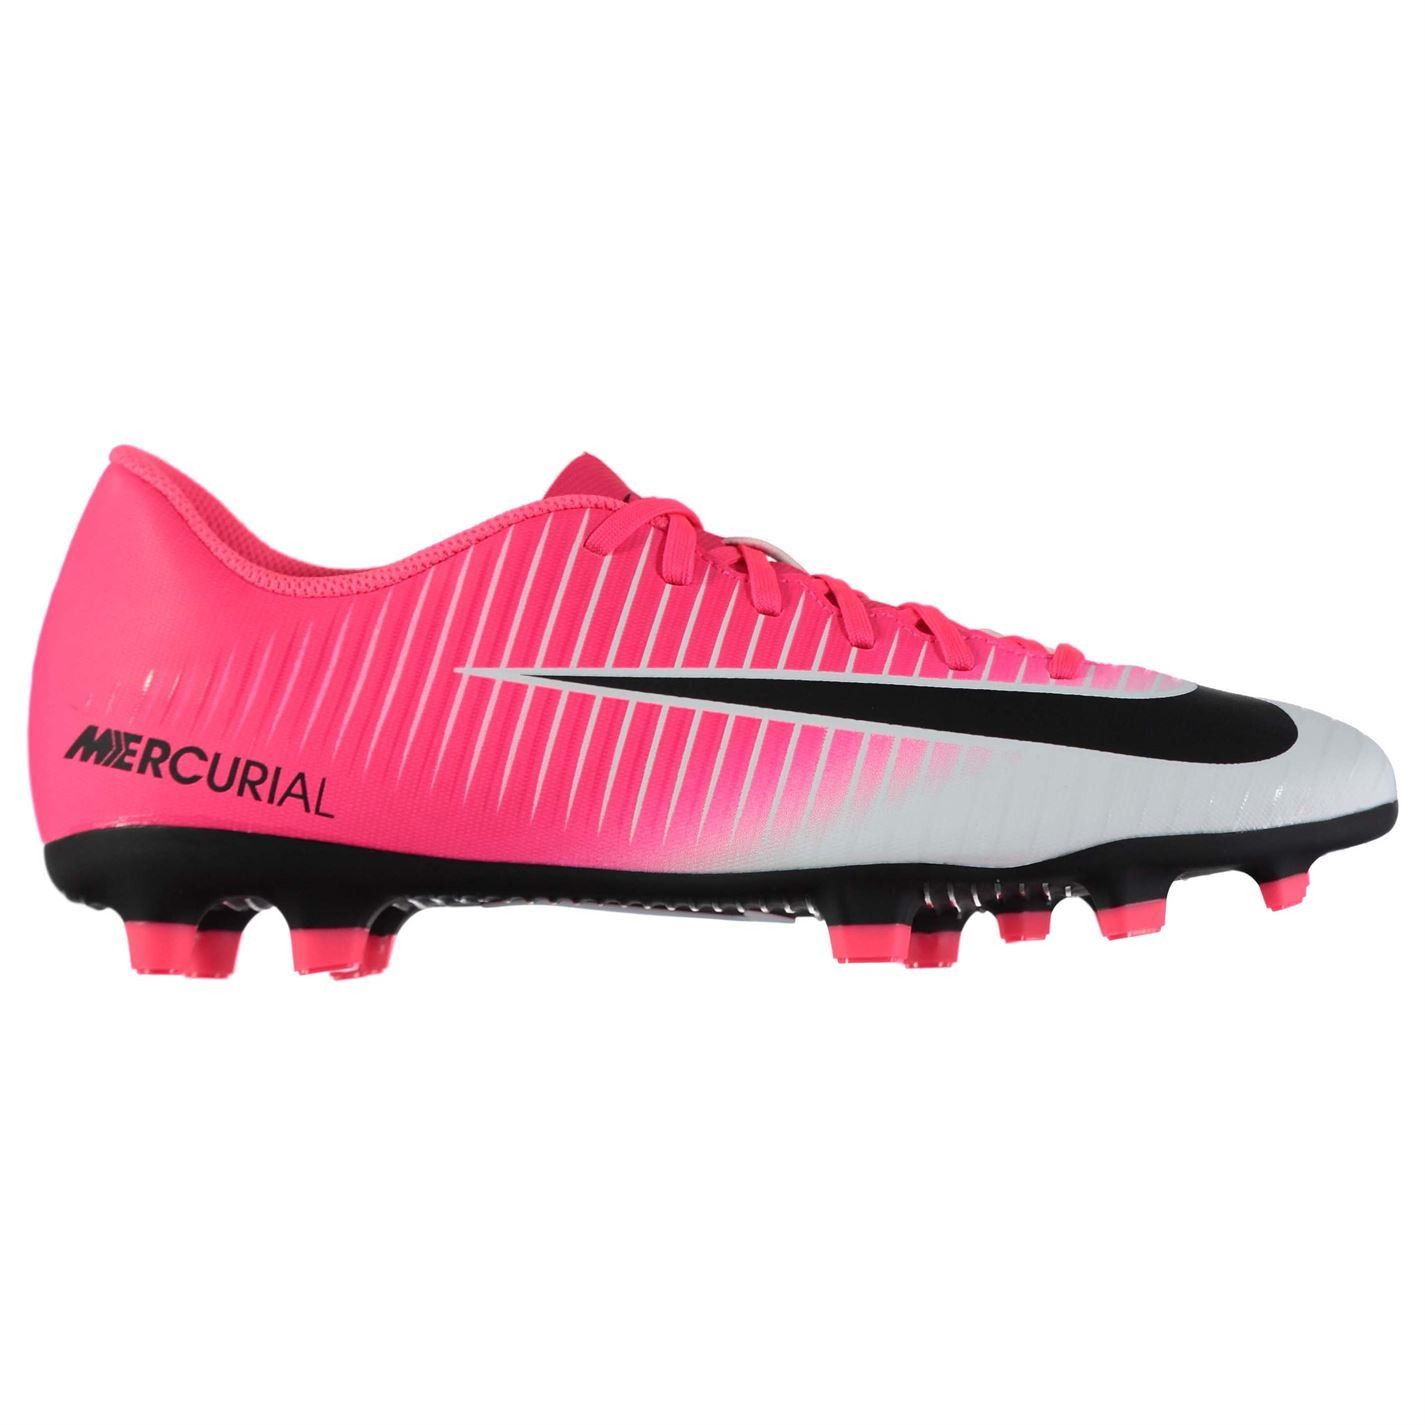 b8cb1fb75a8 ... Nike Mercurial Vortex FG Firm Ground Football Boots Mens Pnk Blk Soccer  Shoes ...